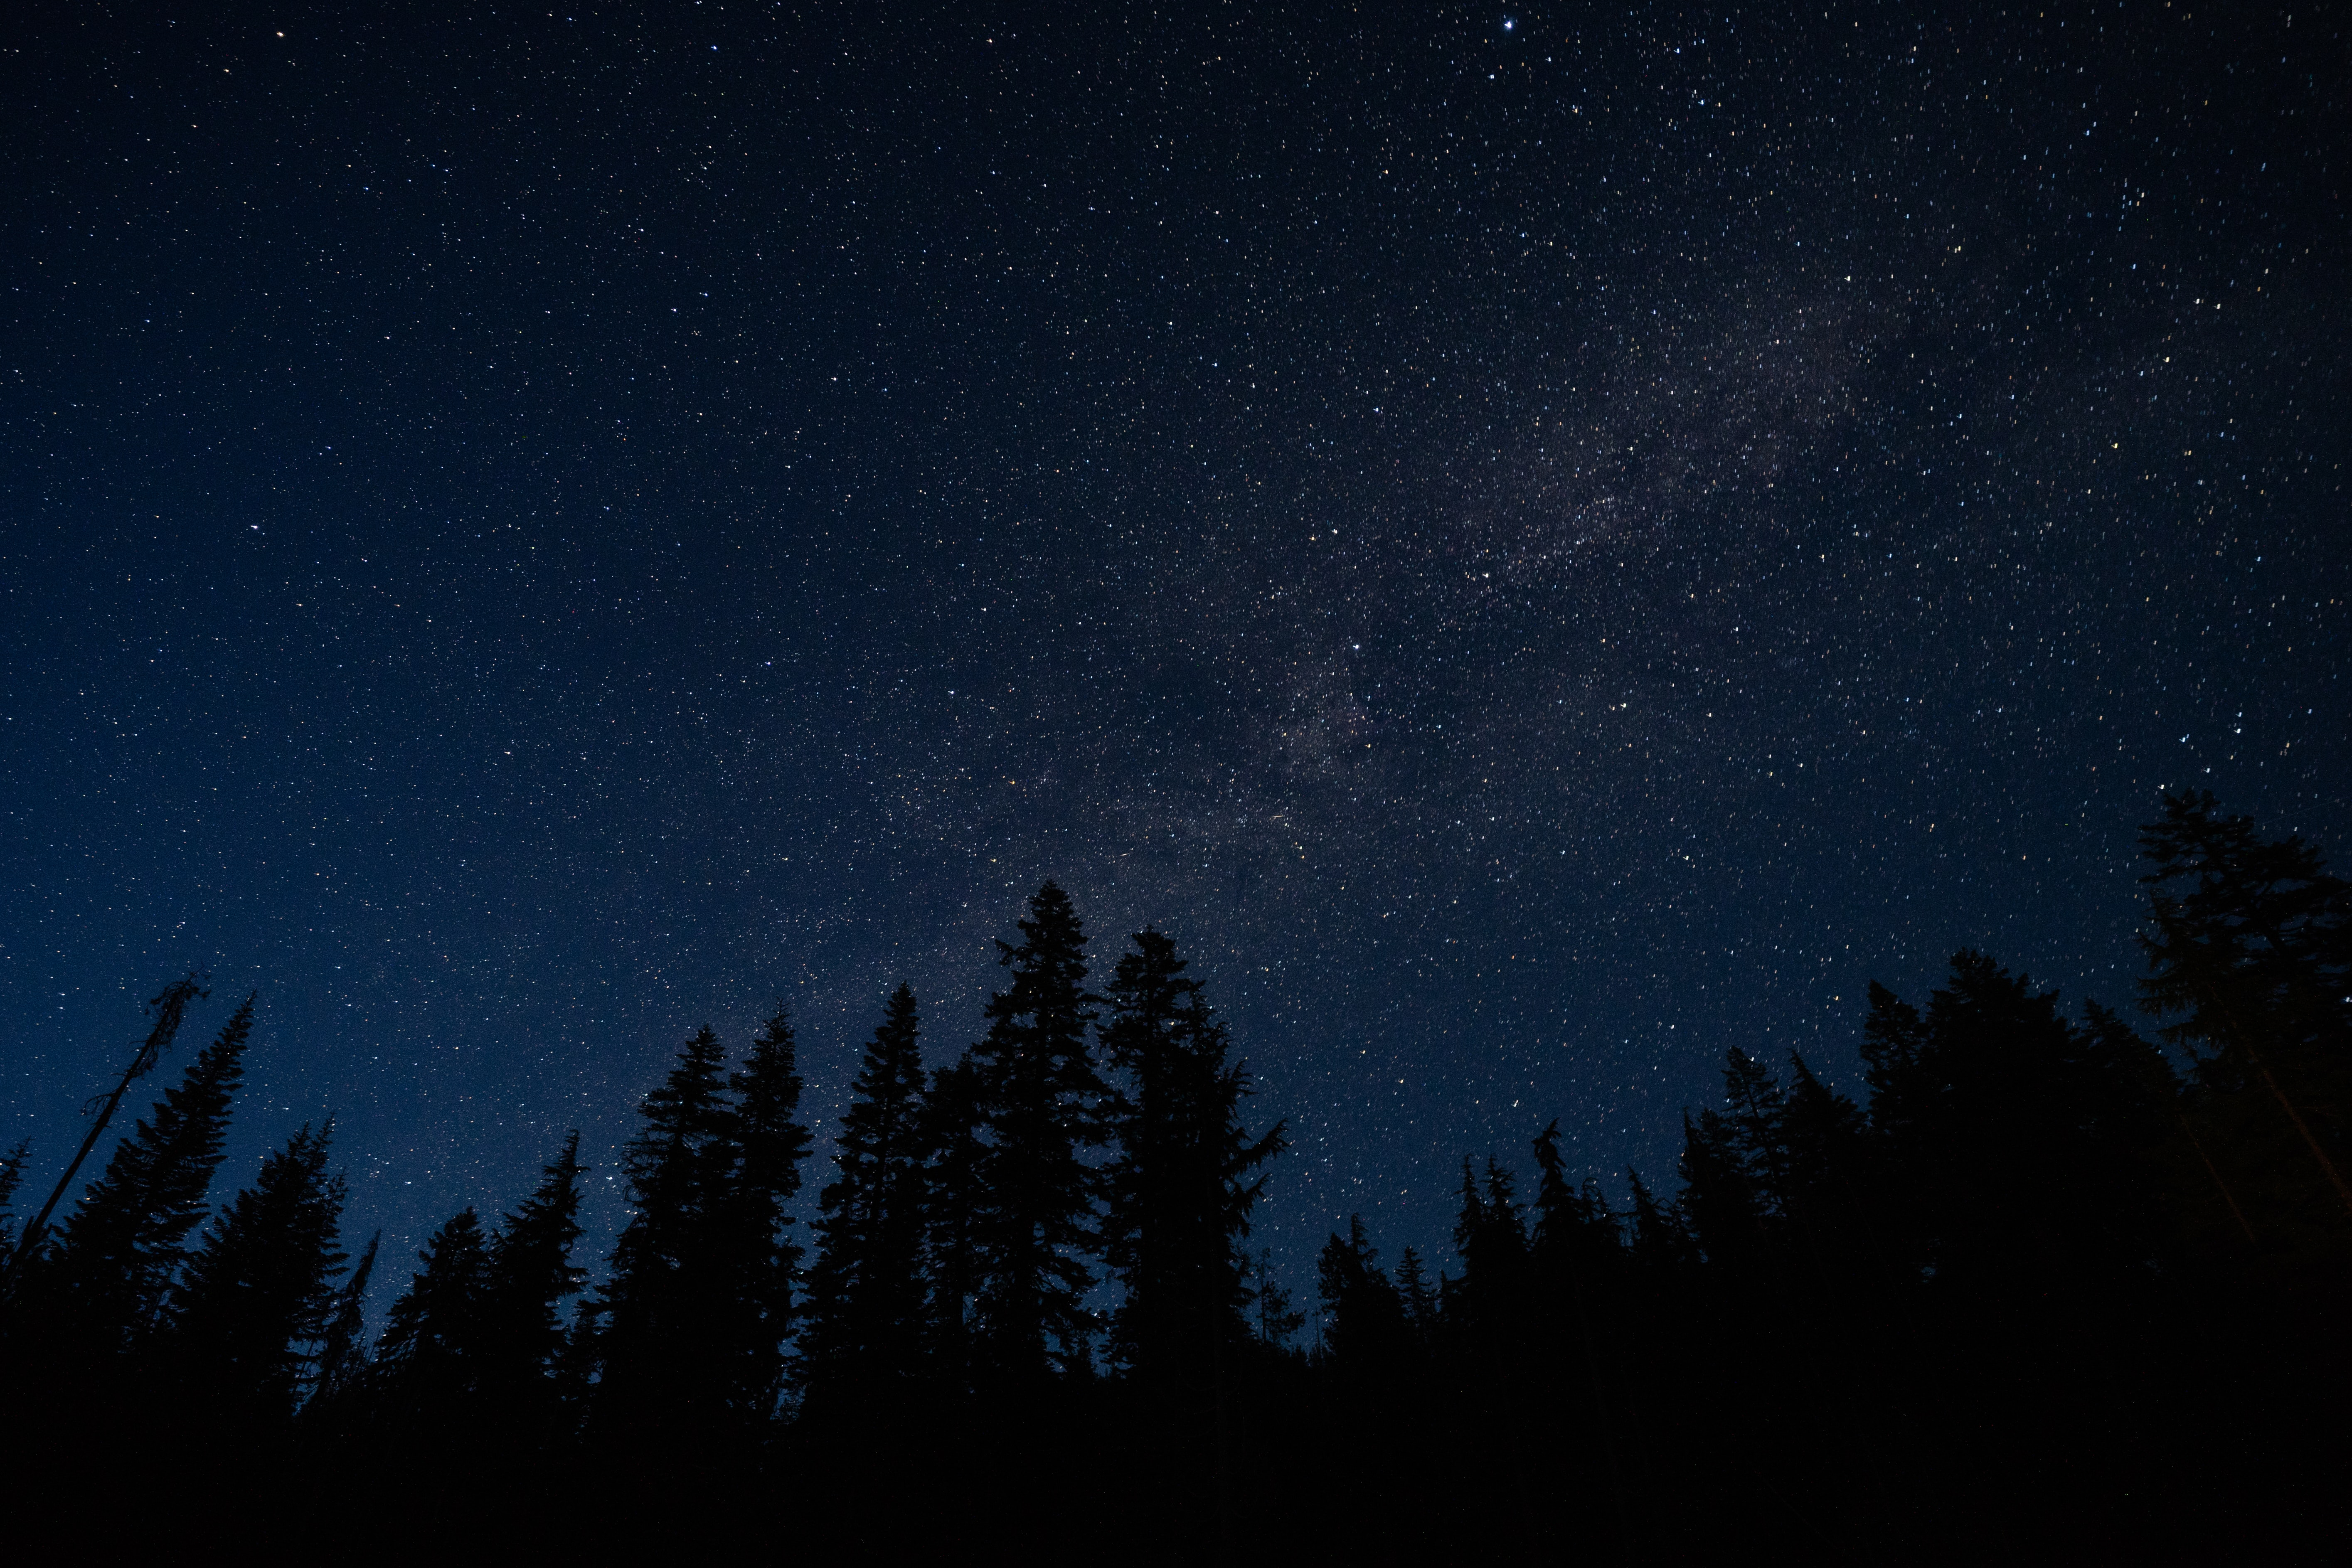 photo of pine tree forest under sky with stars